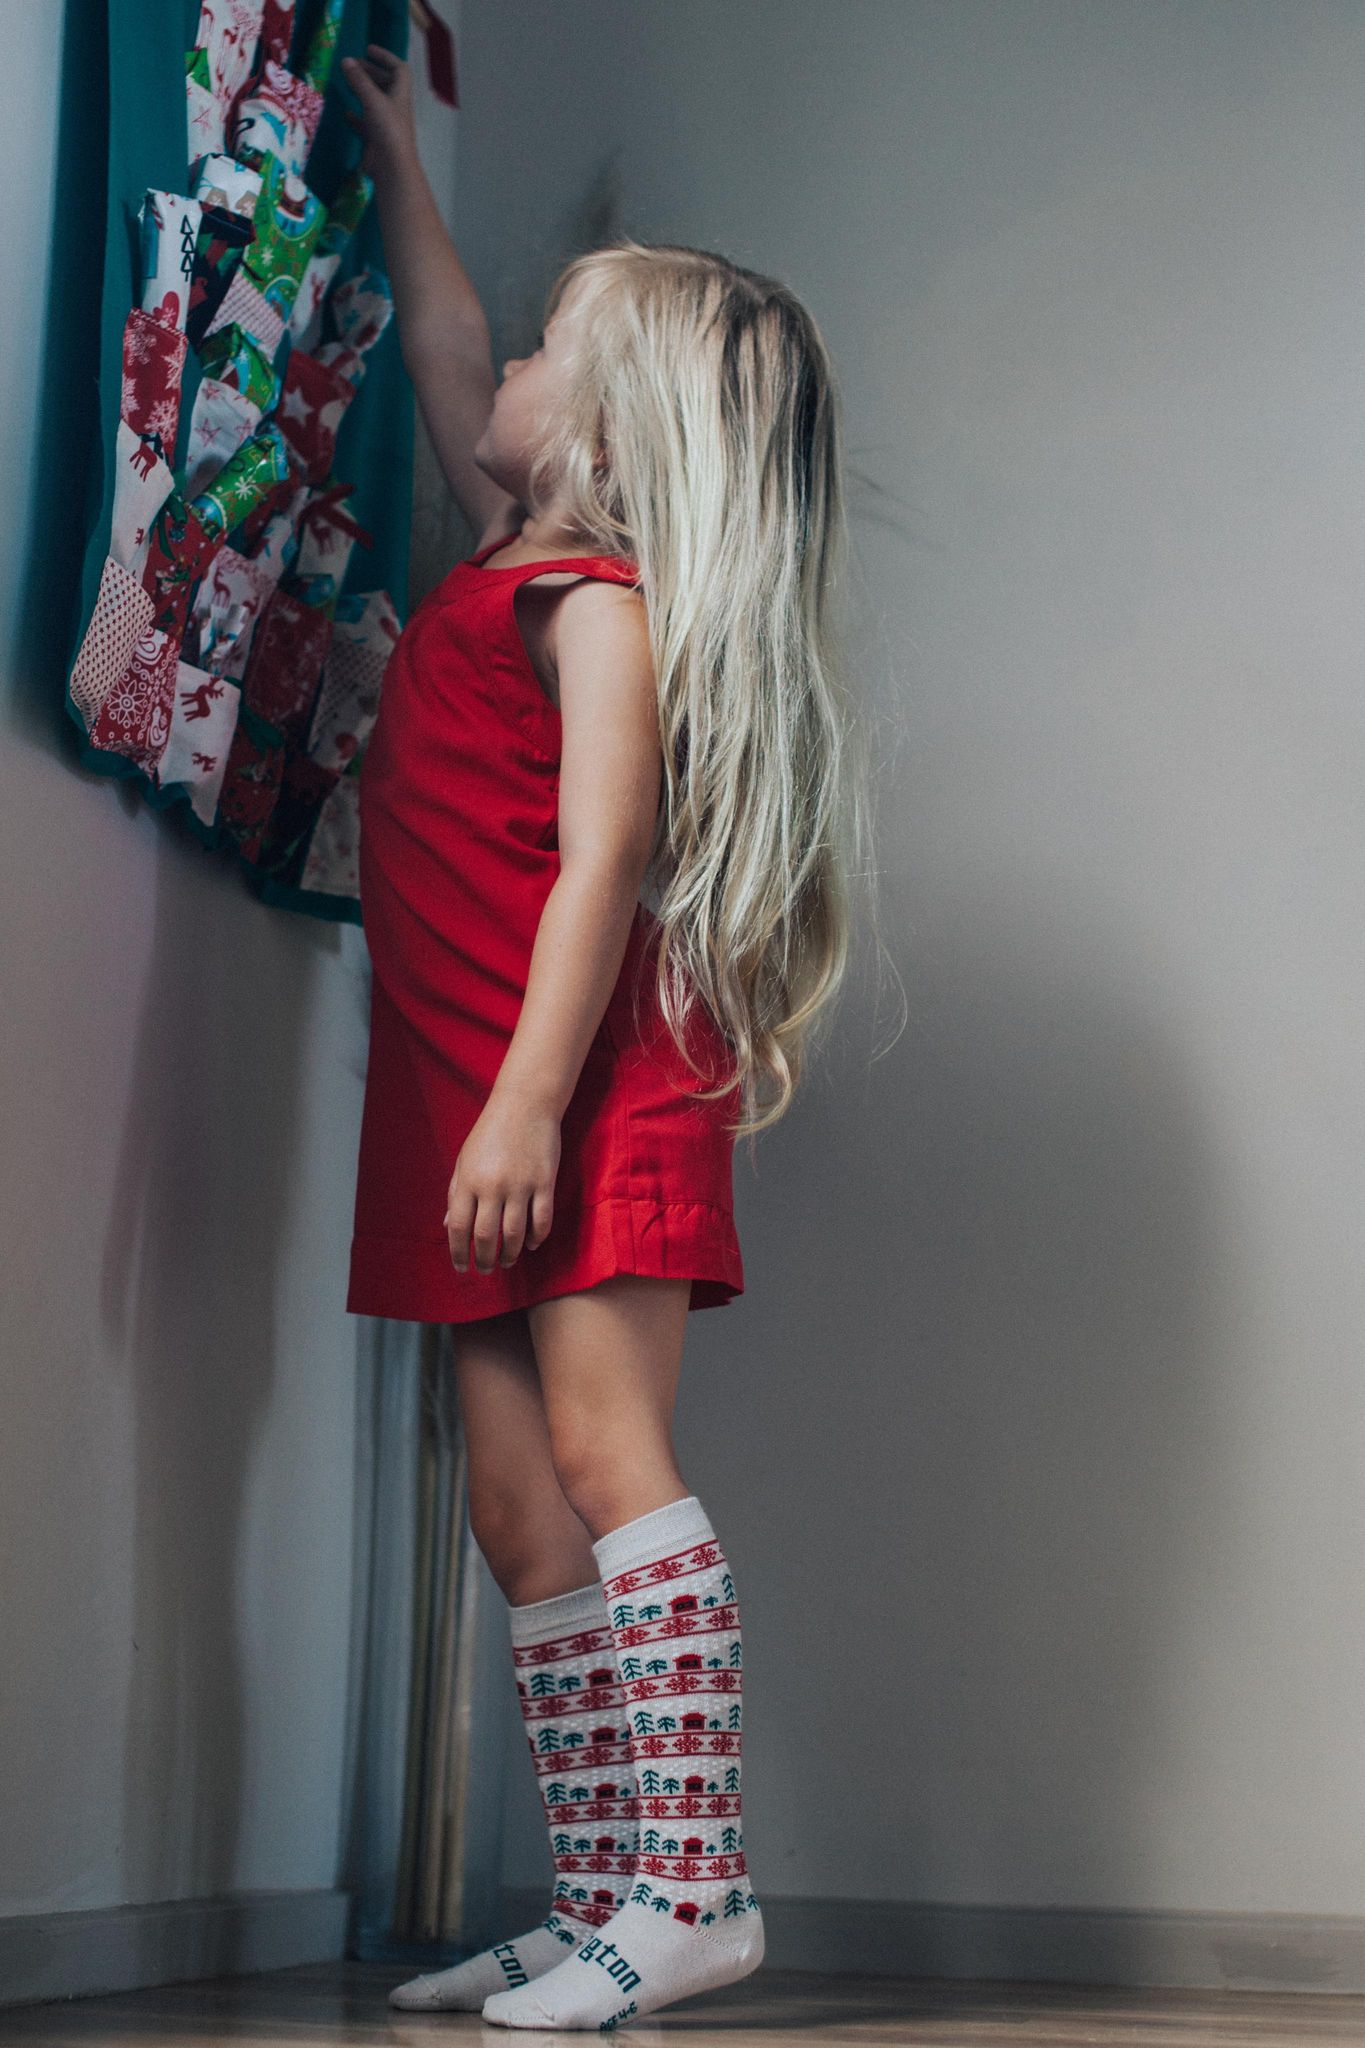 lamington merino wool knee high socks - jingle - freddie the rat kids boutique